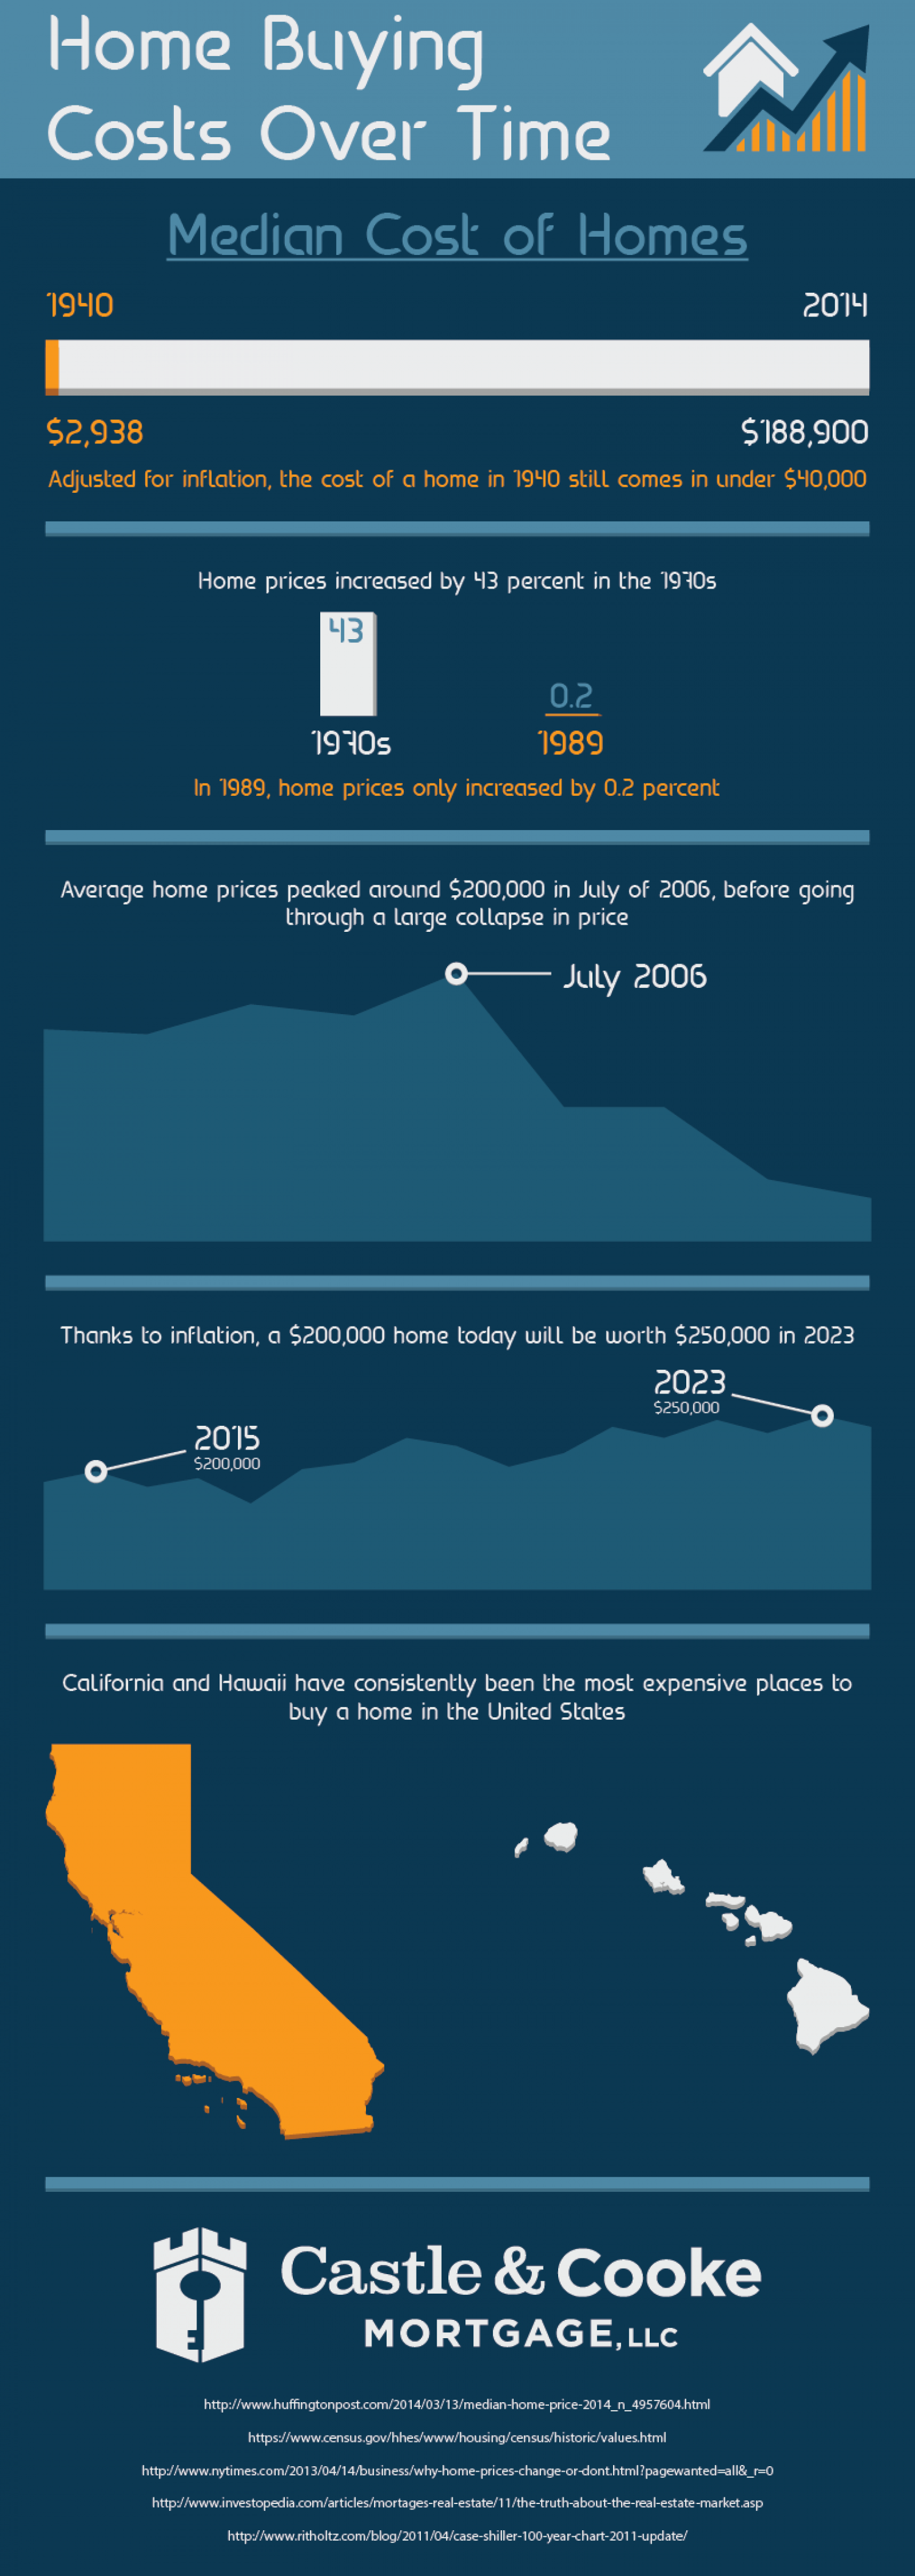 Home Buying Costs Over Time Infographic